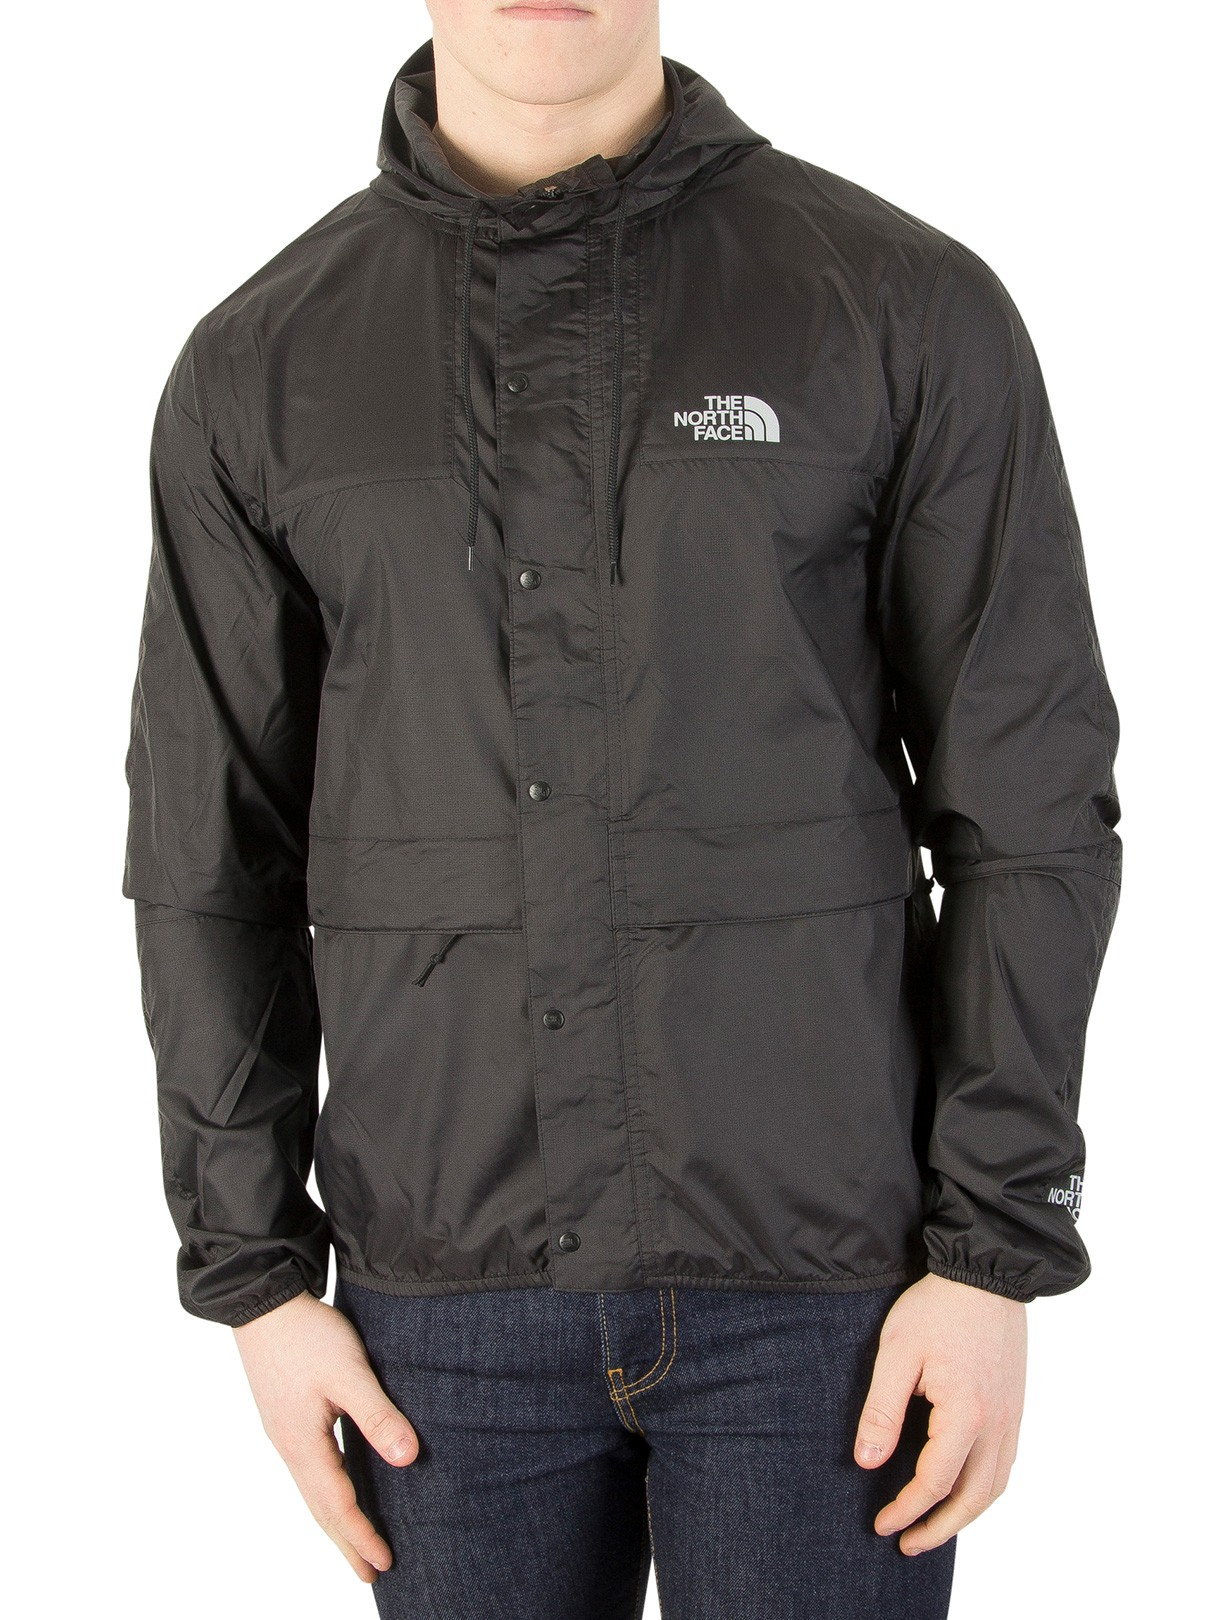 Stand-out.net The North Face Black 1985 Mountain Jacket